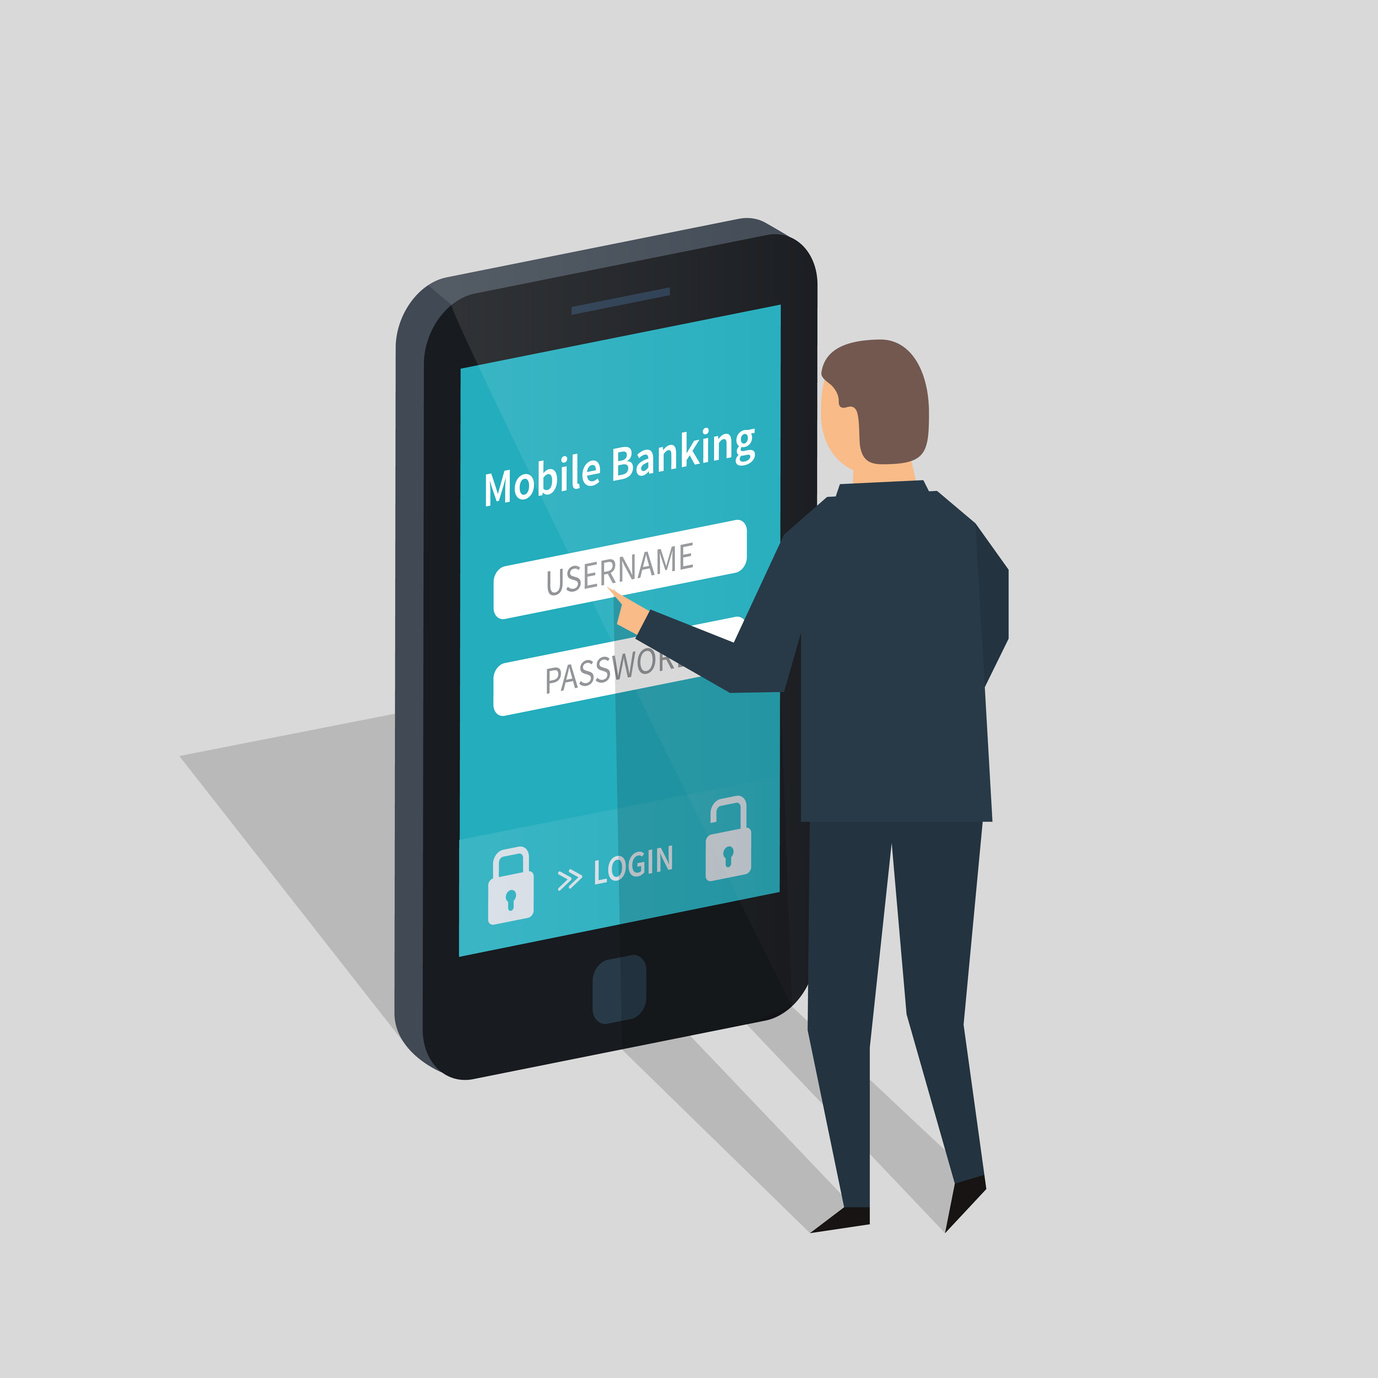 Surprising Stats about Consumers and Mobile Banking